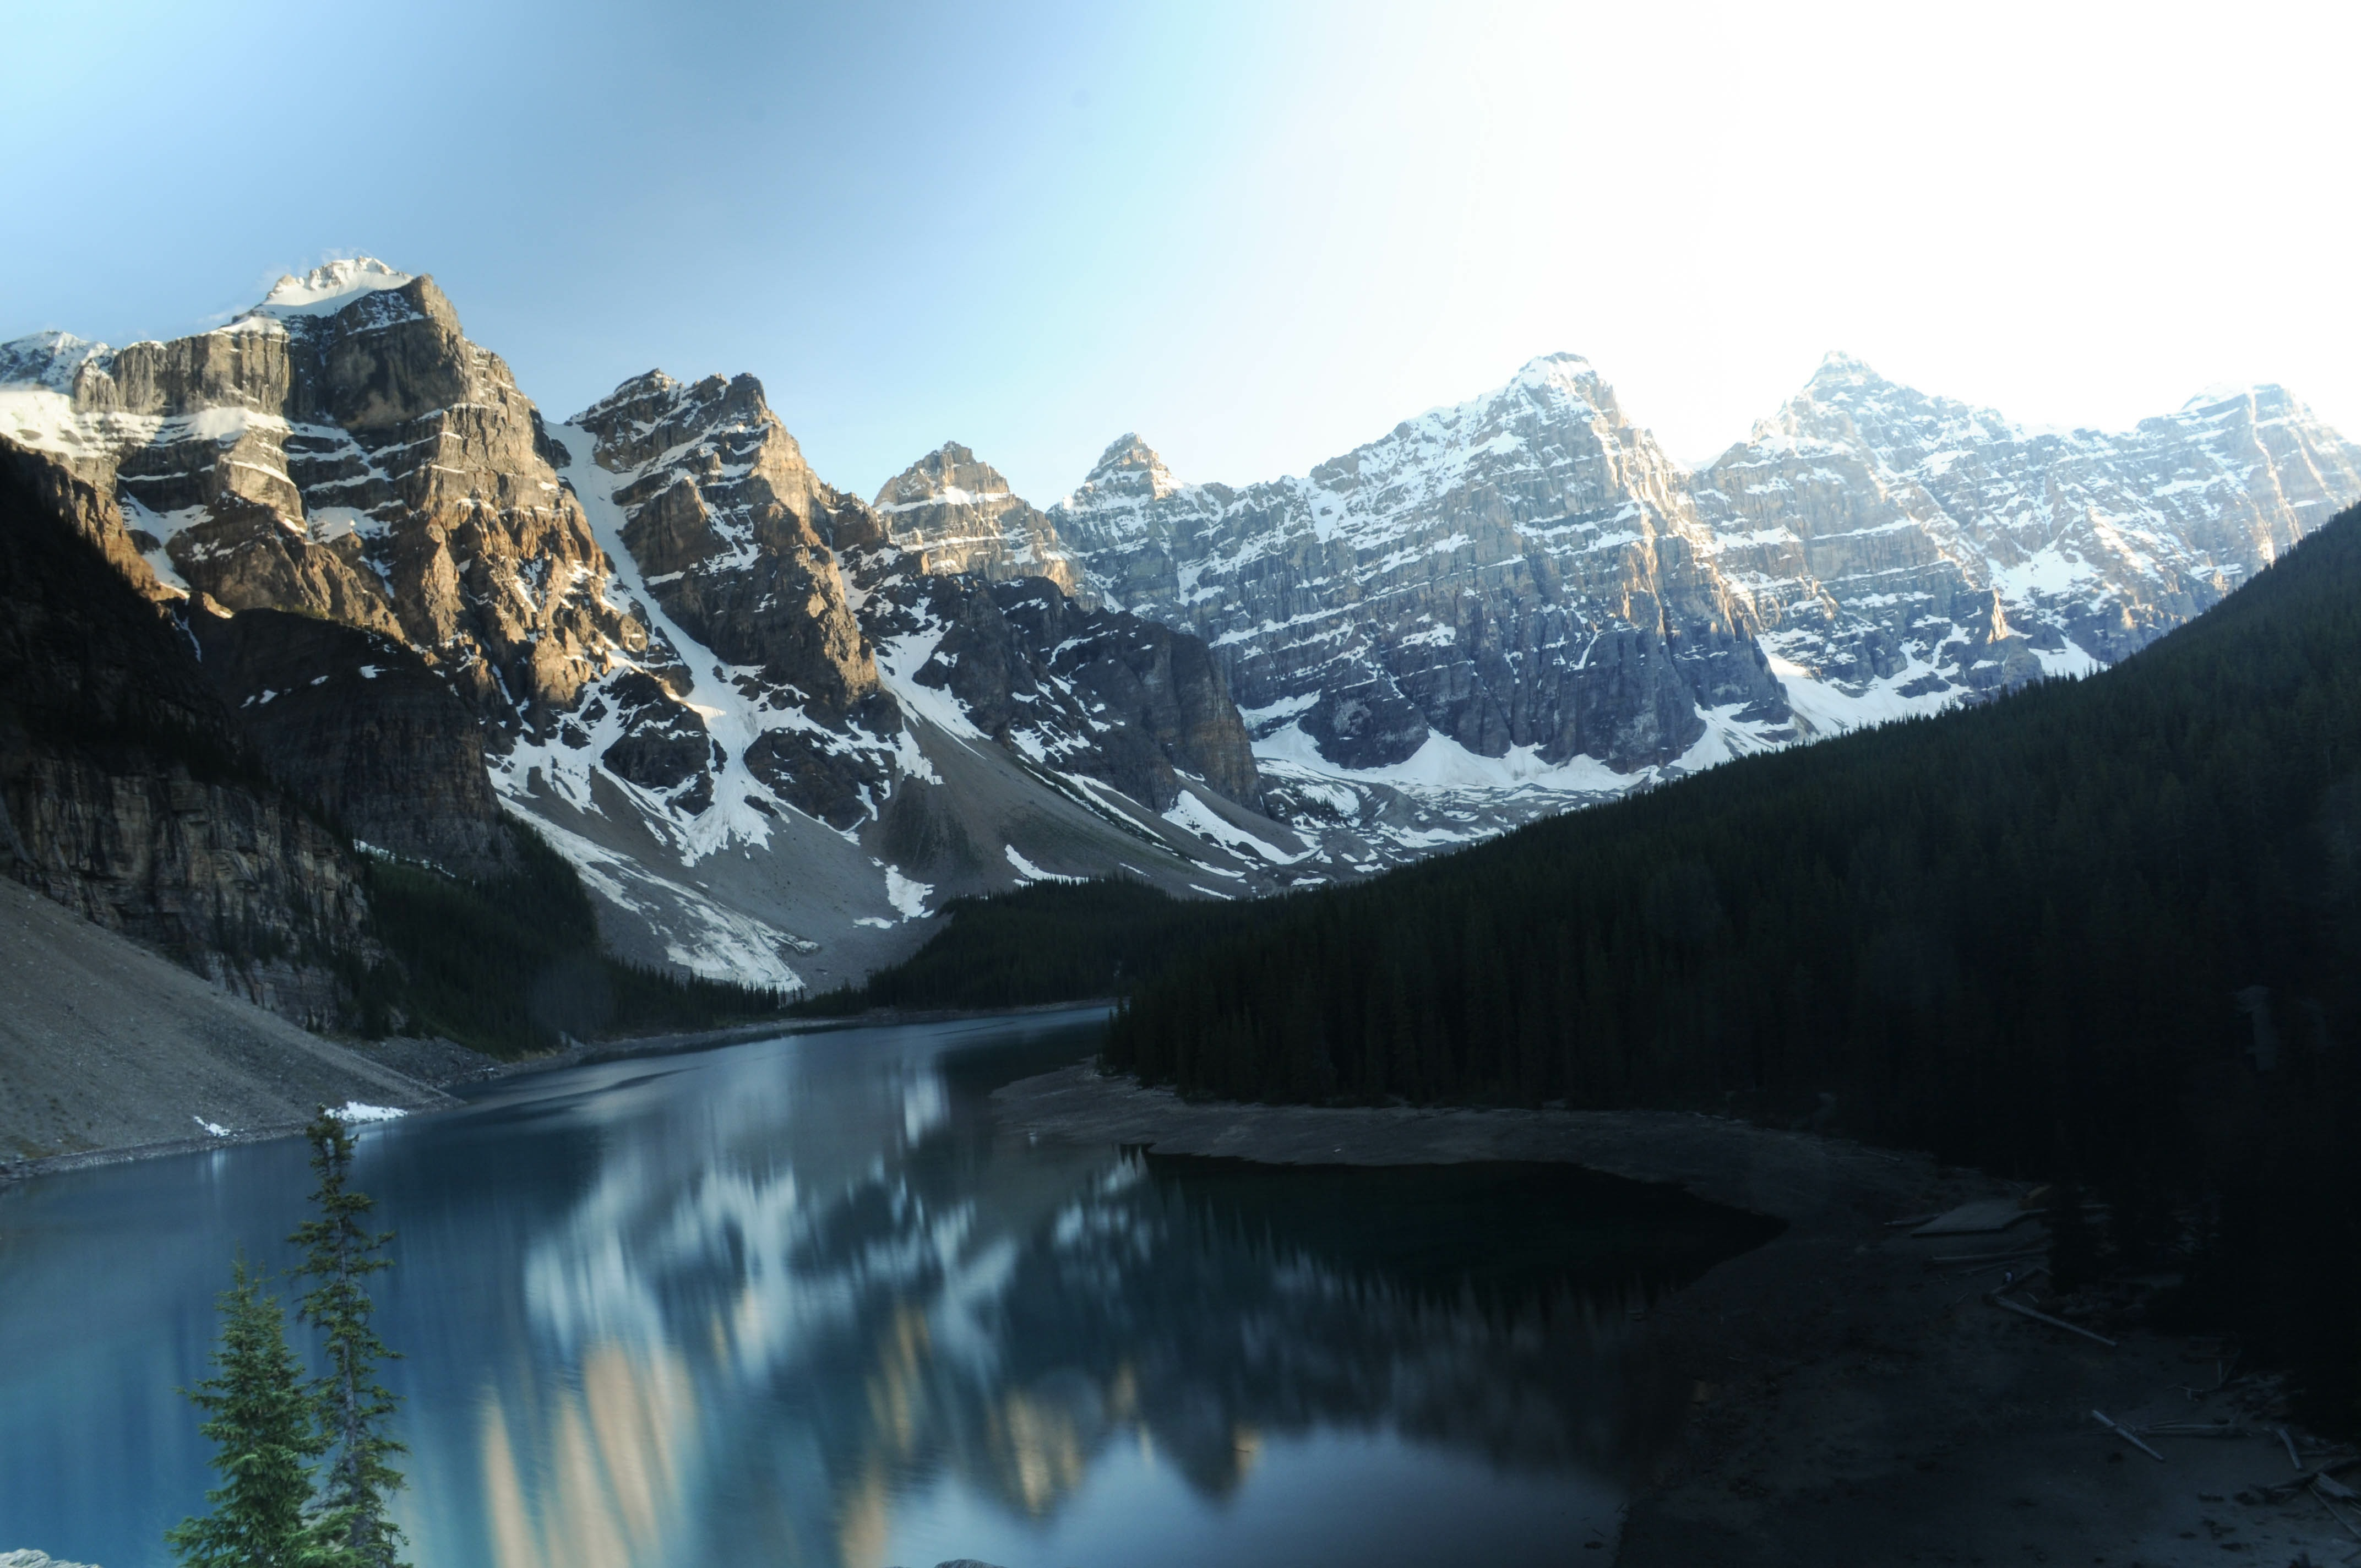 The Moraine Lake is showing a reflection of the snowcapped mountains surrounding it